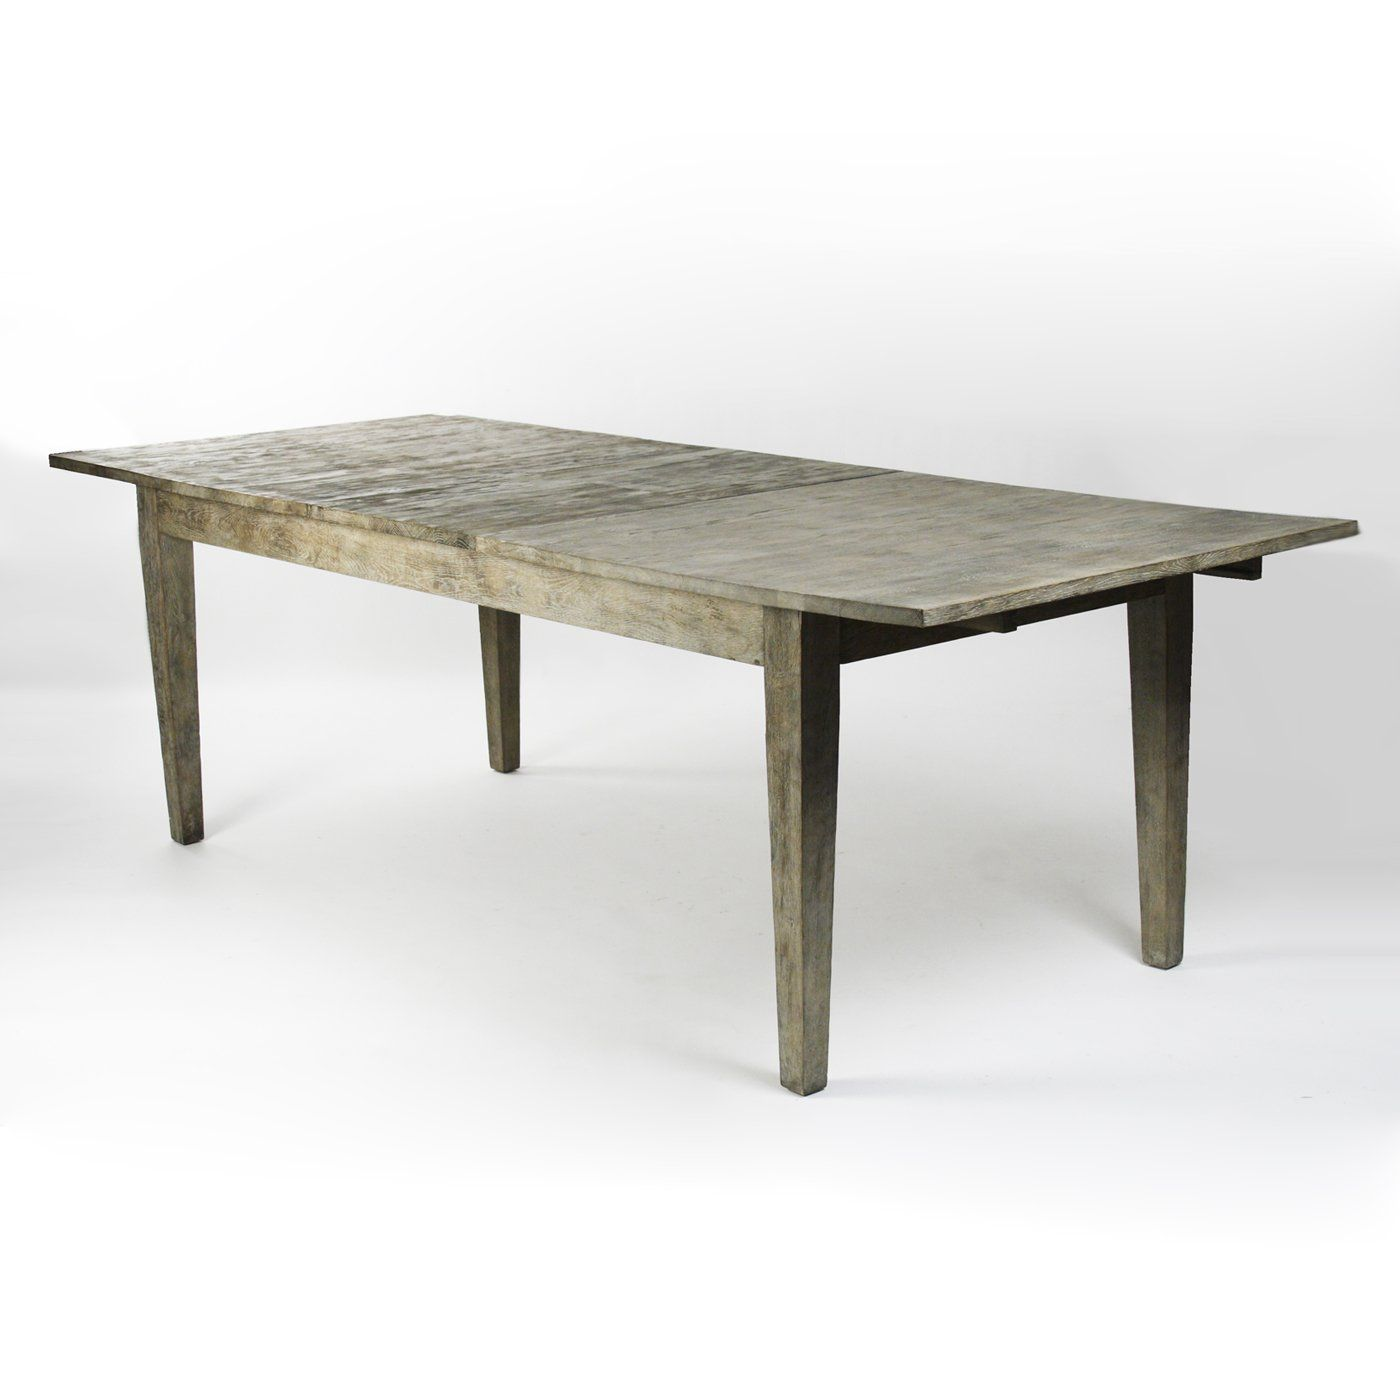 Zentique t003 e272 grasse oak dining table limed grey home furniture showroom building my - Limed oak dining tables ...